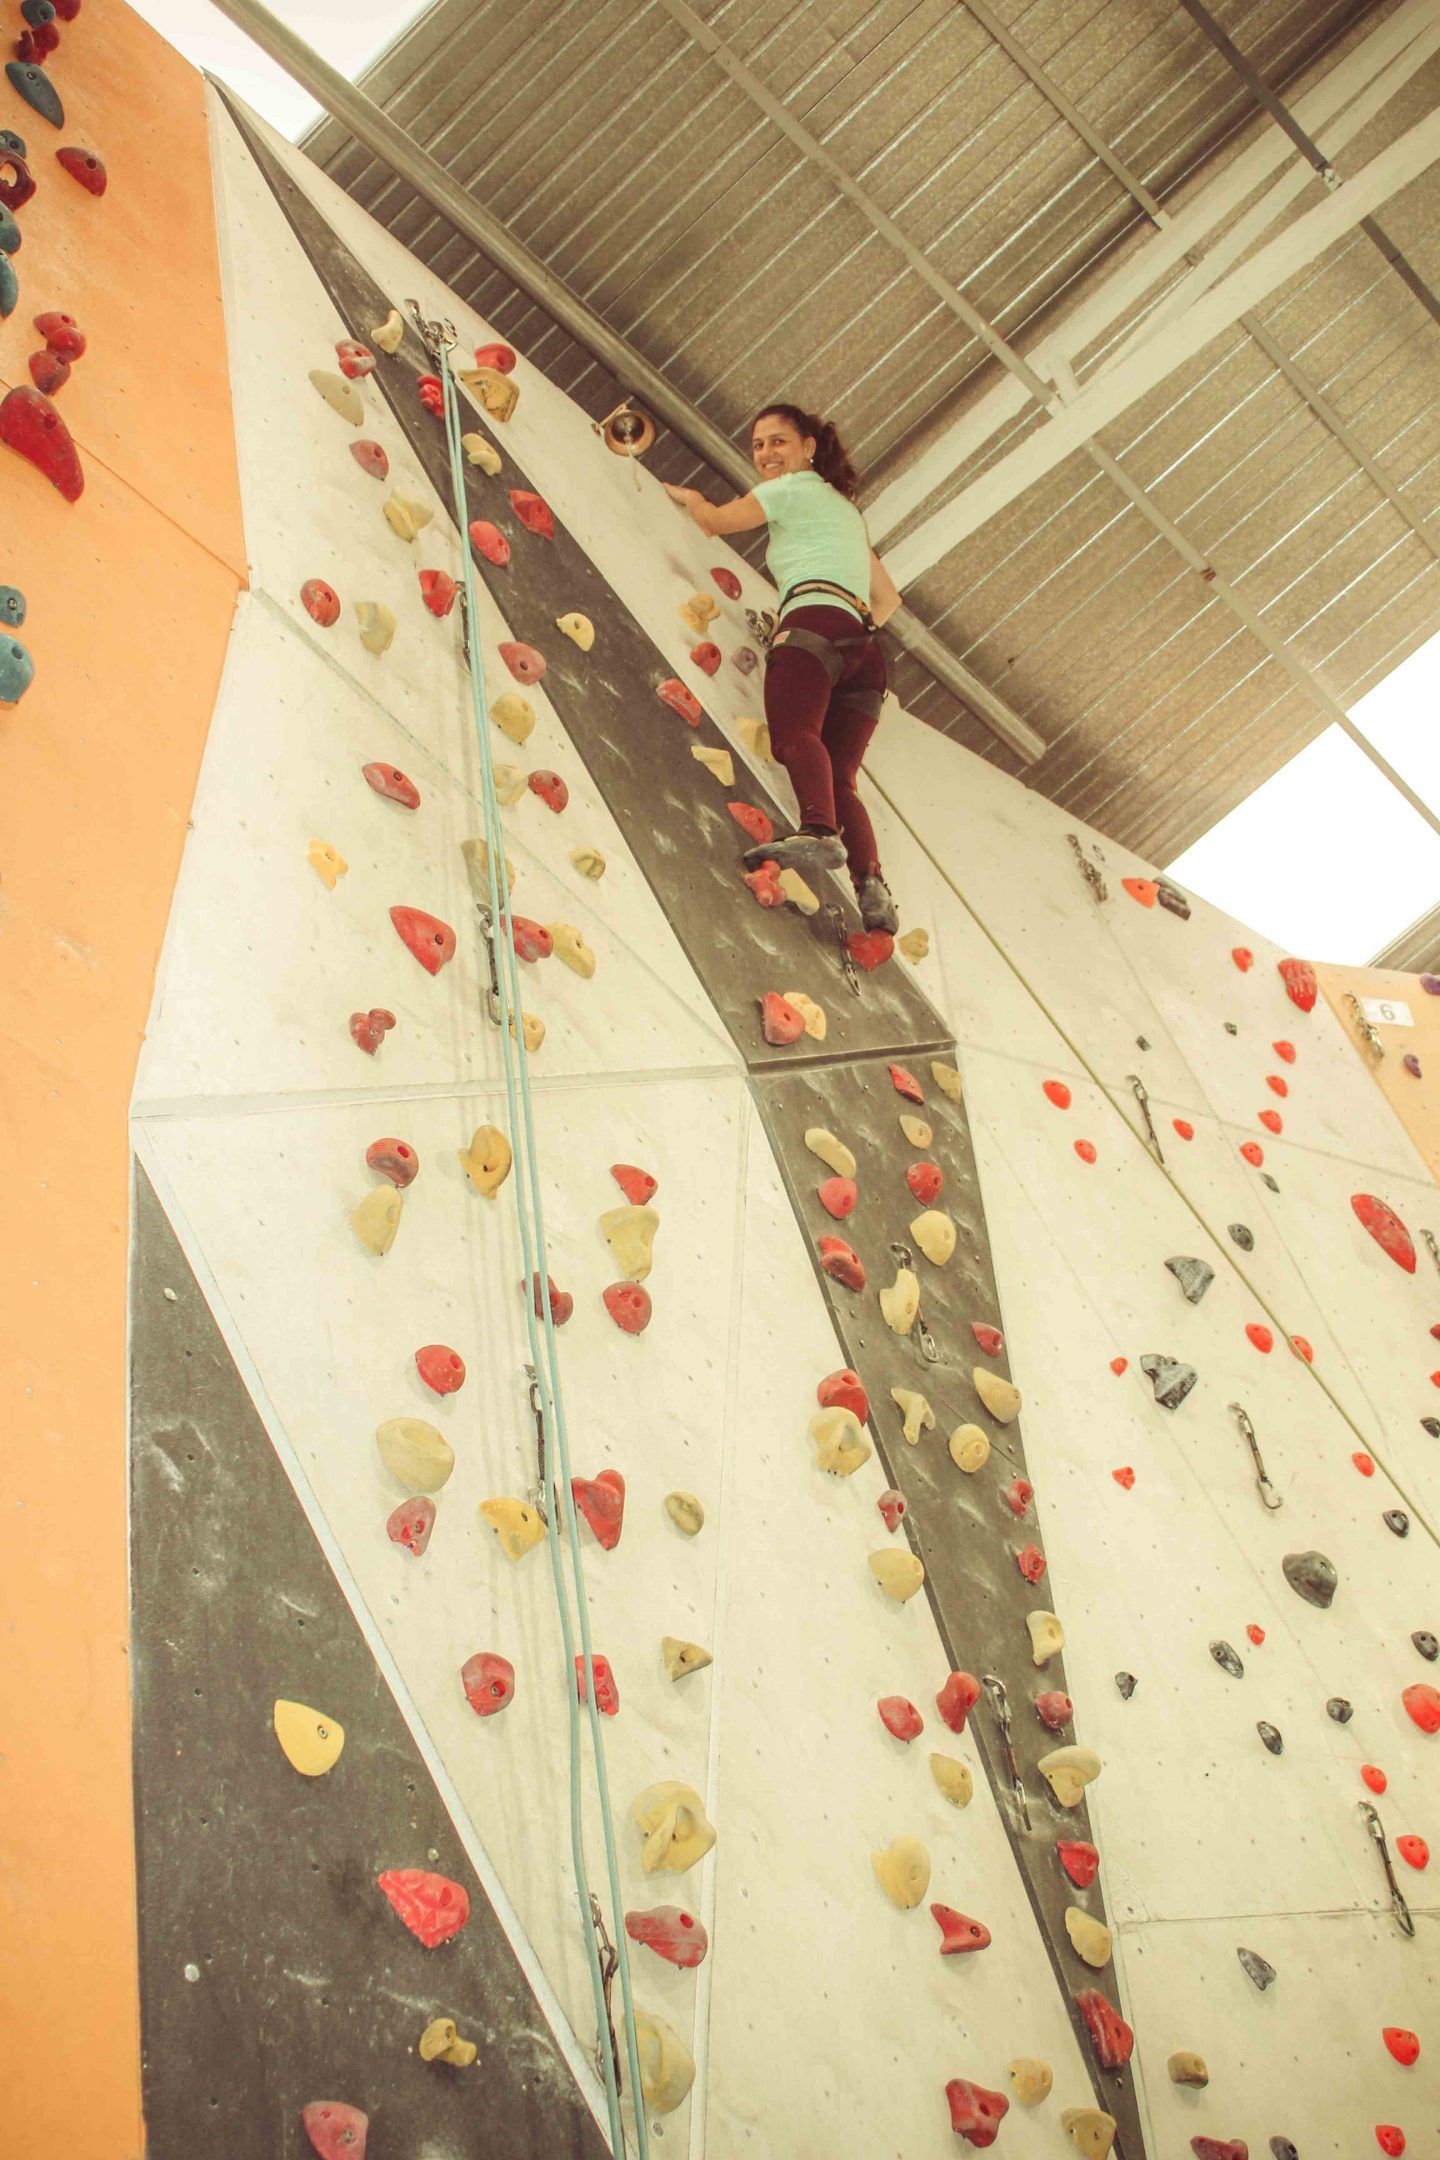 Indoor Rock Climbing for kids - a mix of fun and exercise